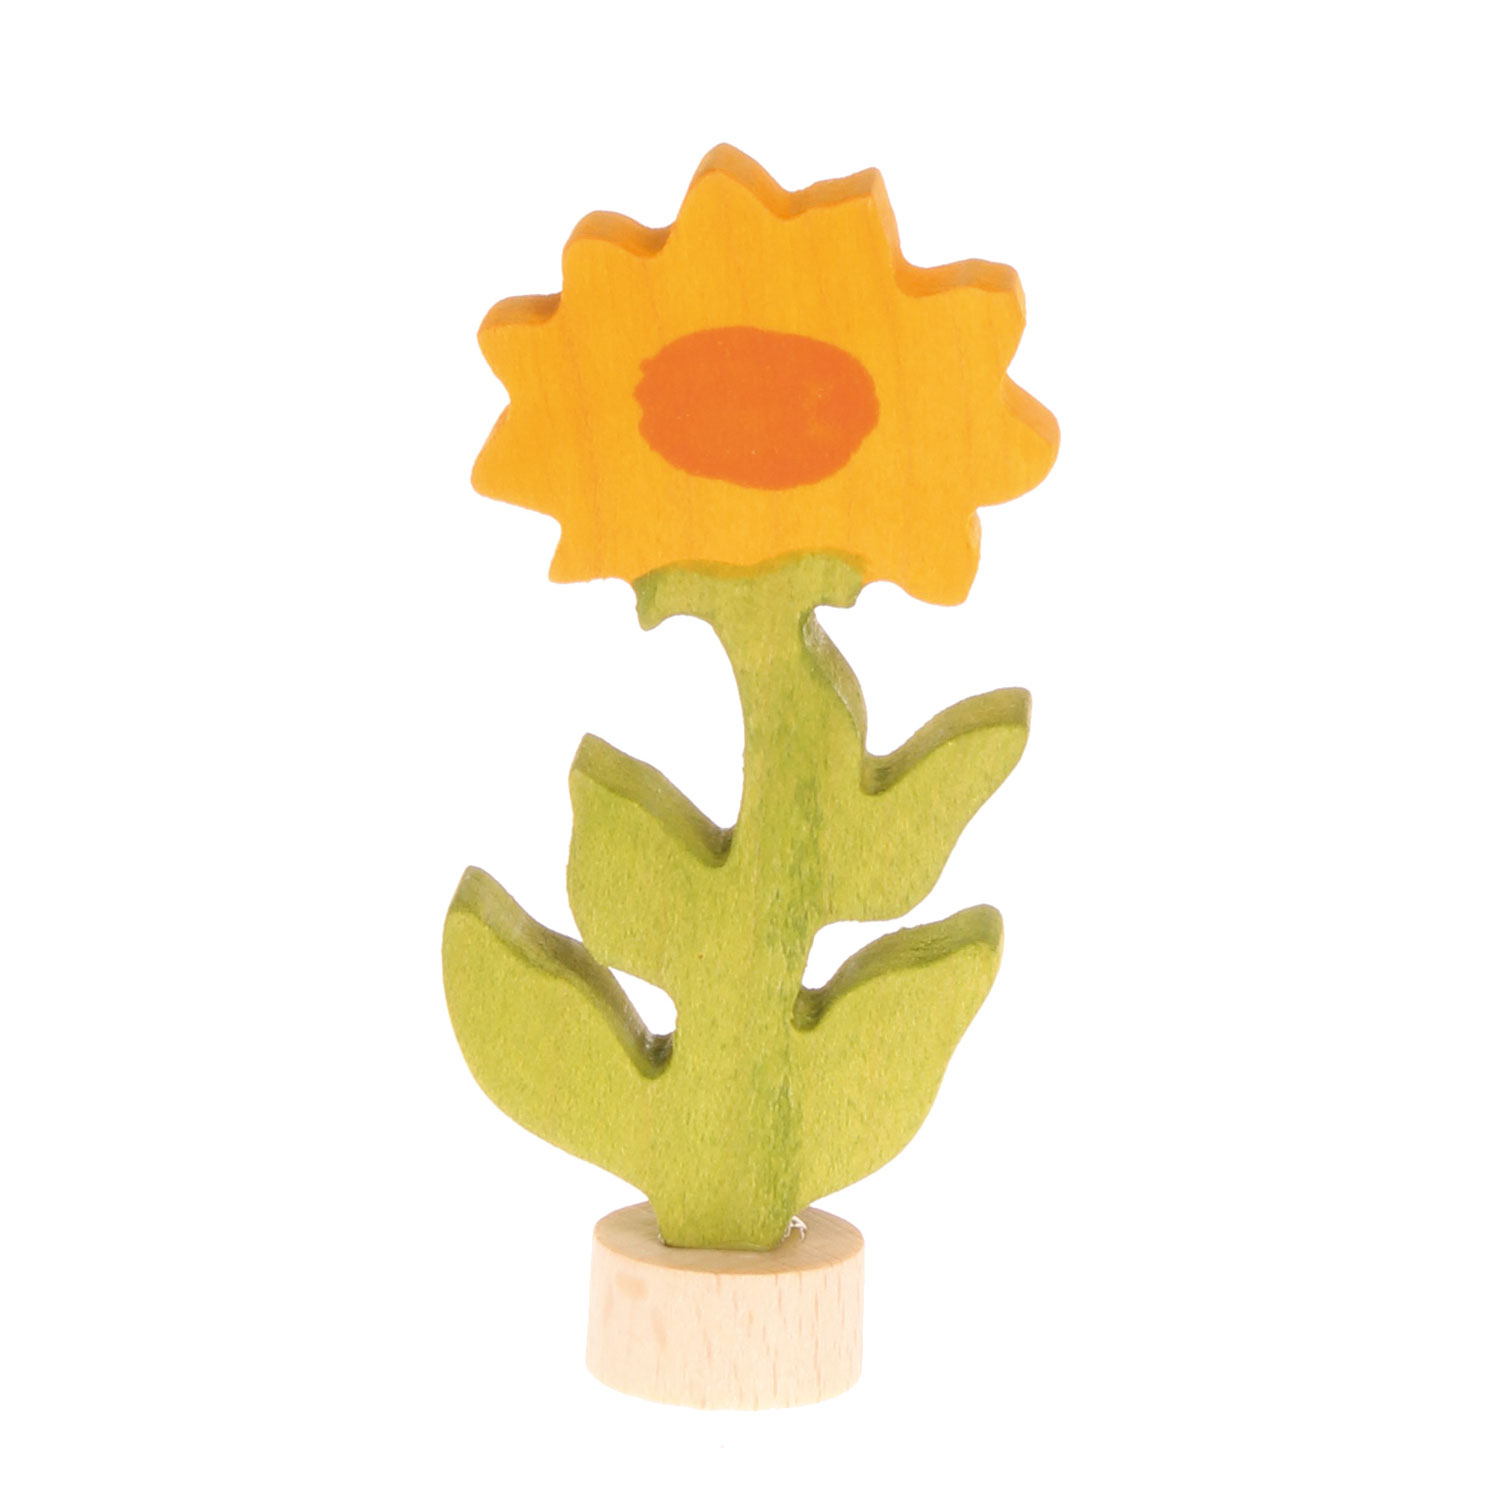 Grimm's Decorative Figure for Birthday Ring Marigold